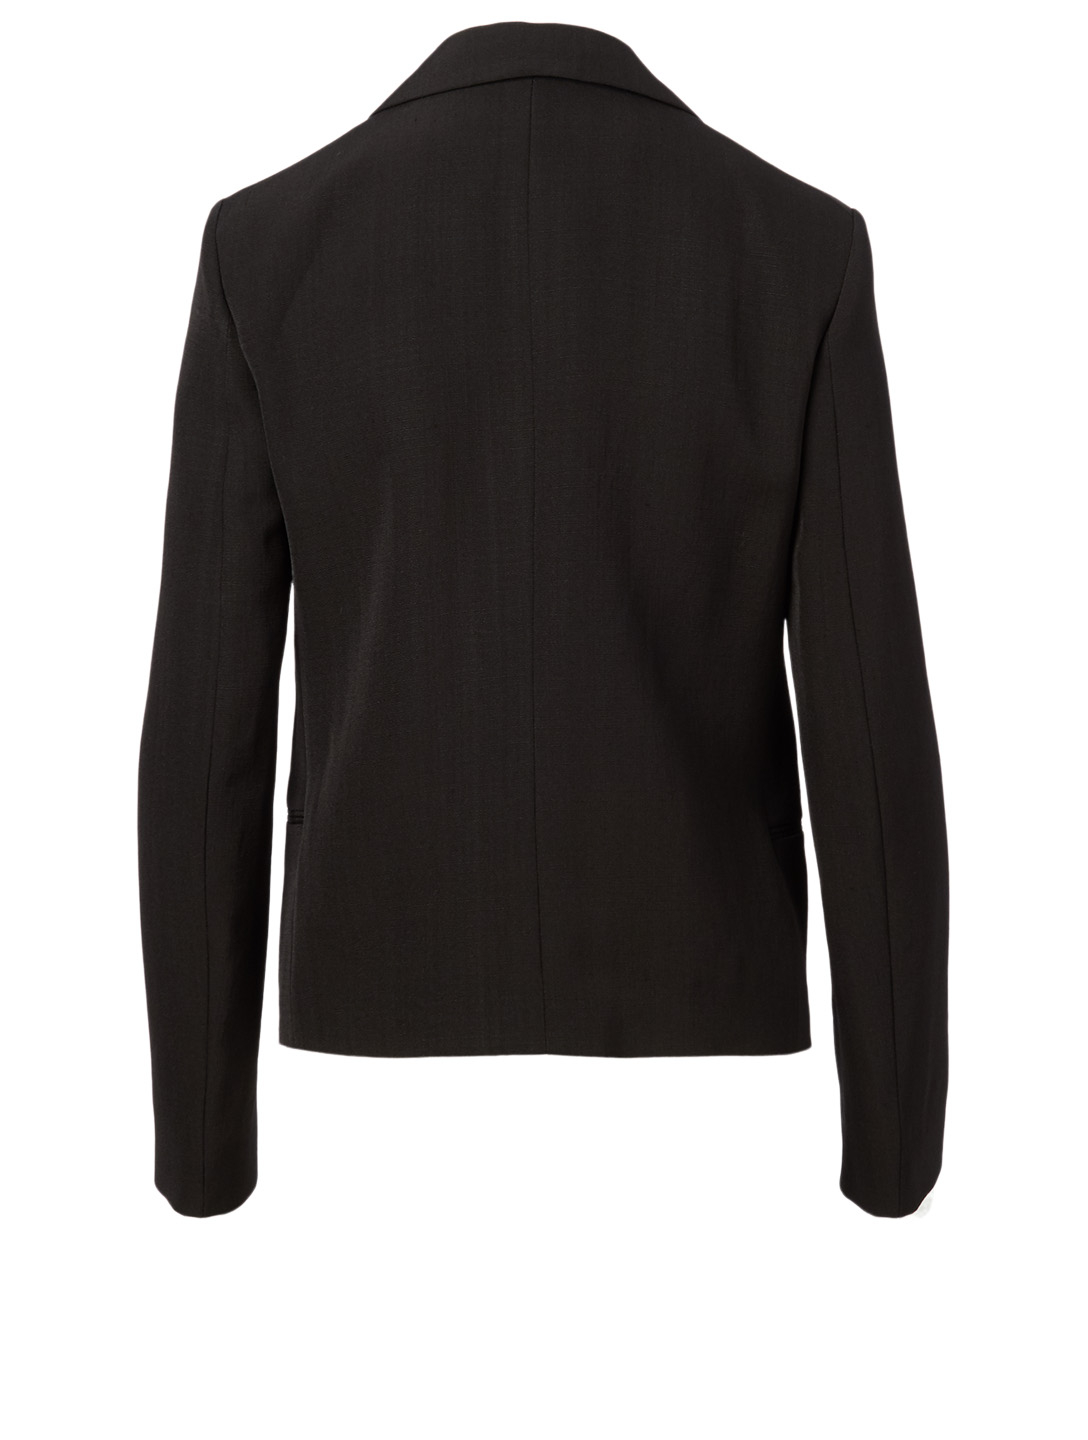 JIL SANDER Maiva Silk-Blend Blazer Women's Black